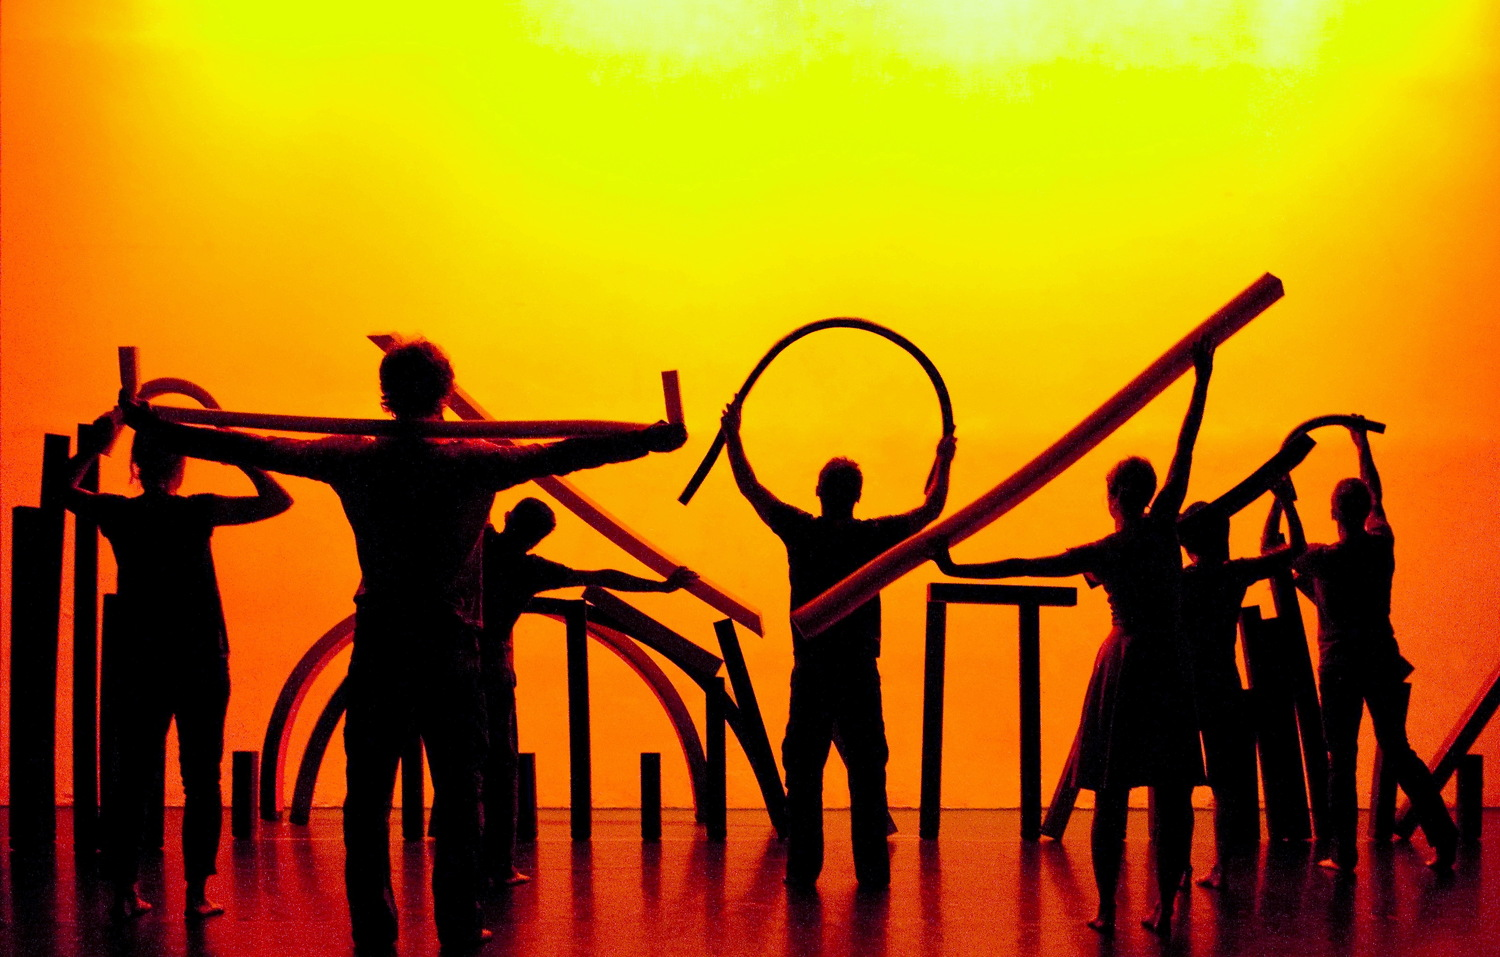 A abstract cityscape is created by performers, with backs to audience, holding different shaped foam lines in a mutlitude of positions against yellow and orange backdrop